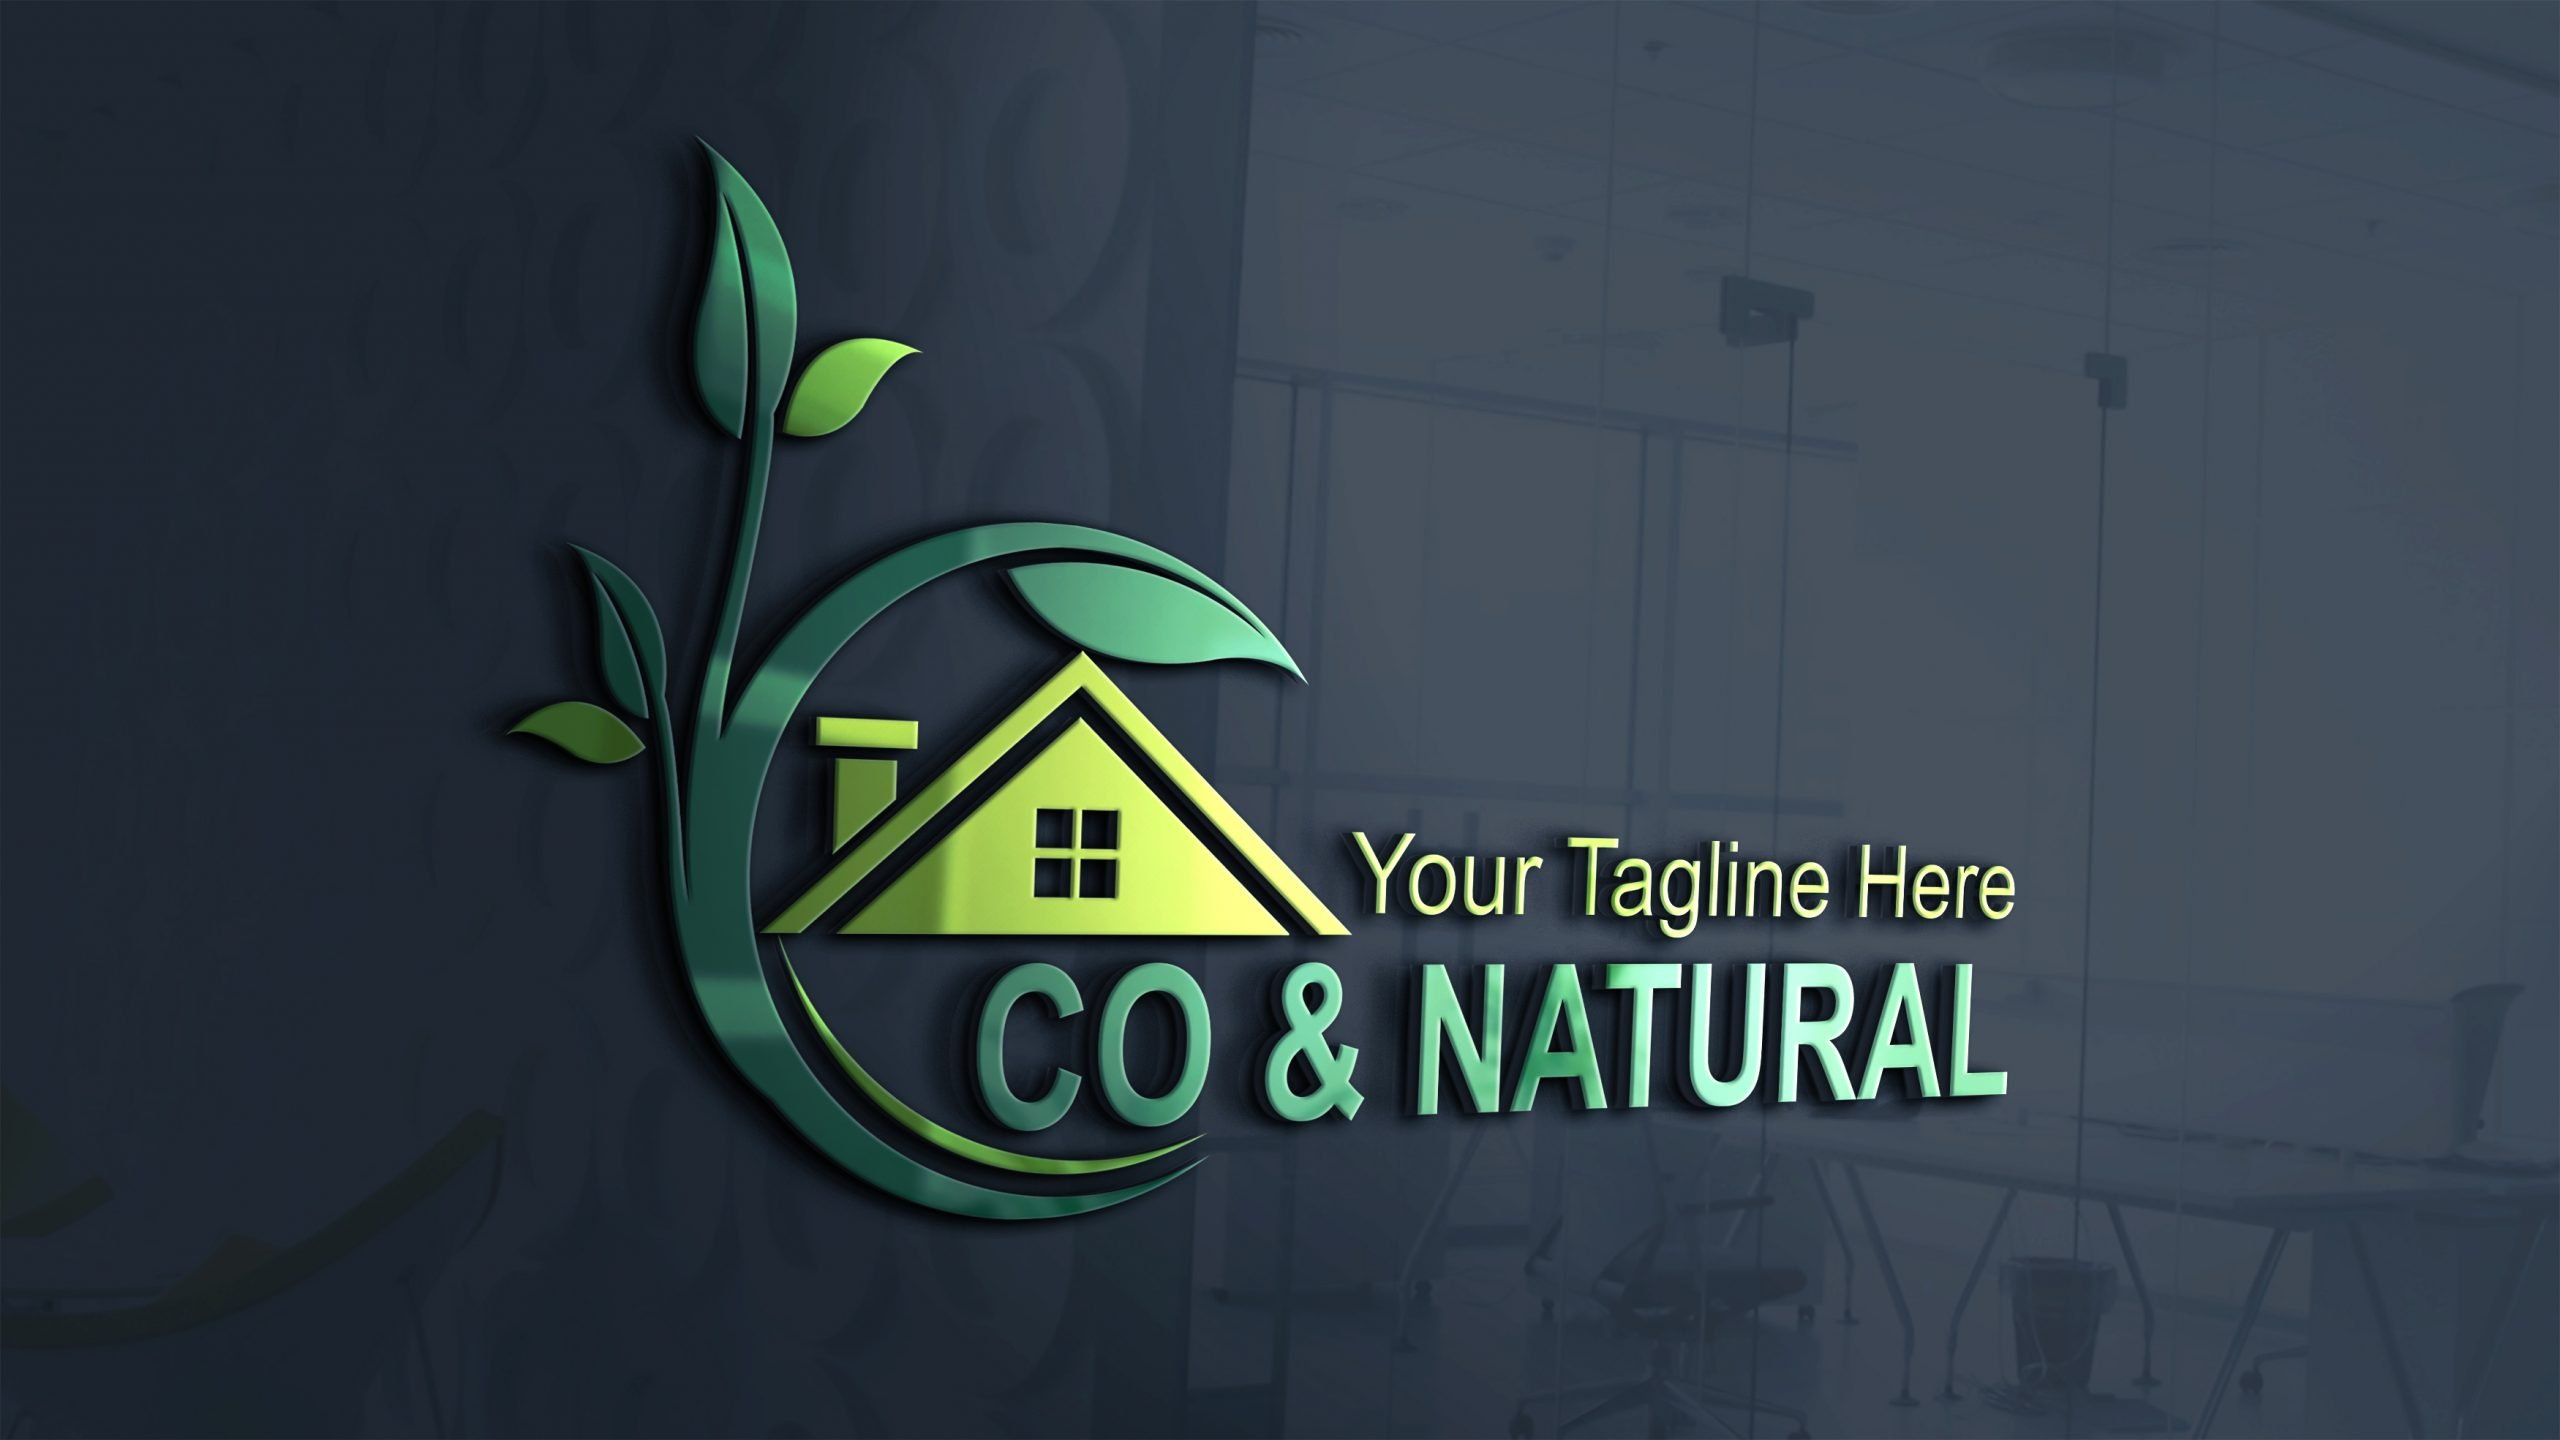 Eco & nature house logo design template